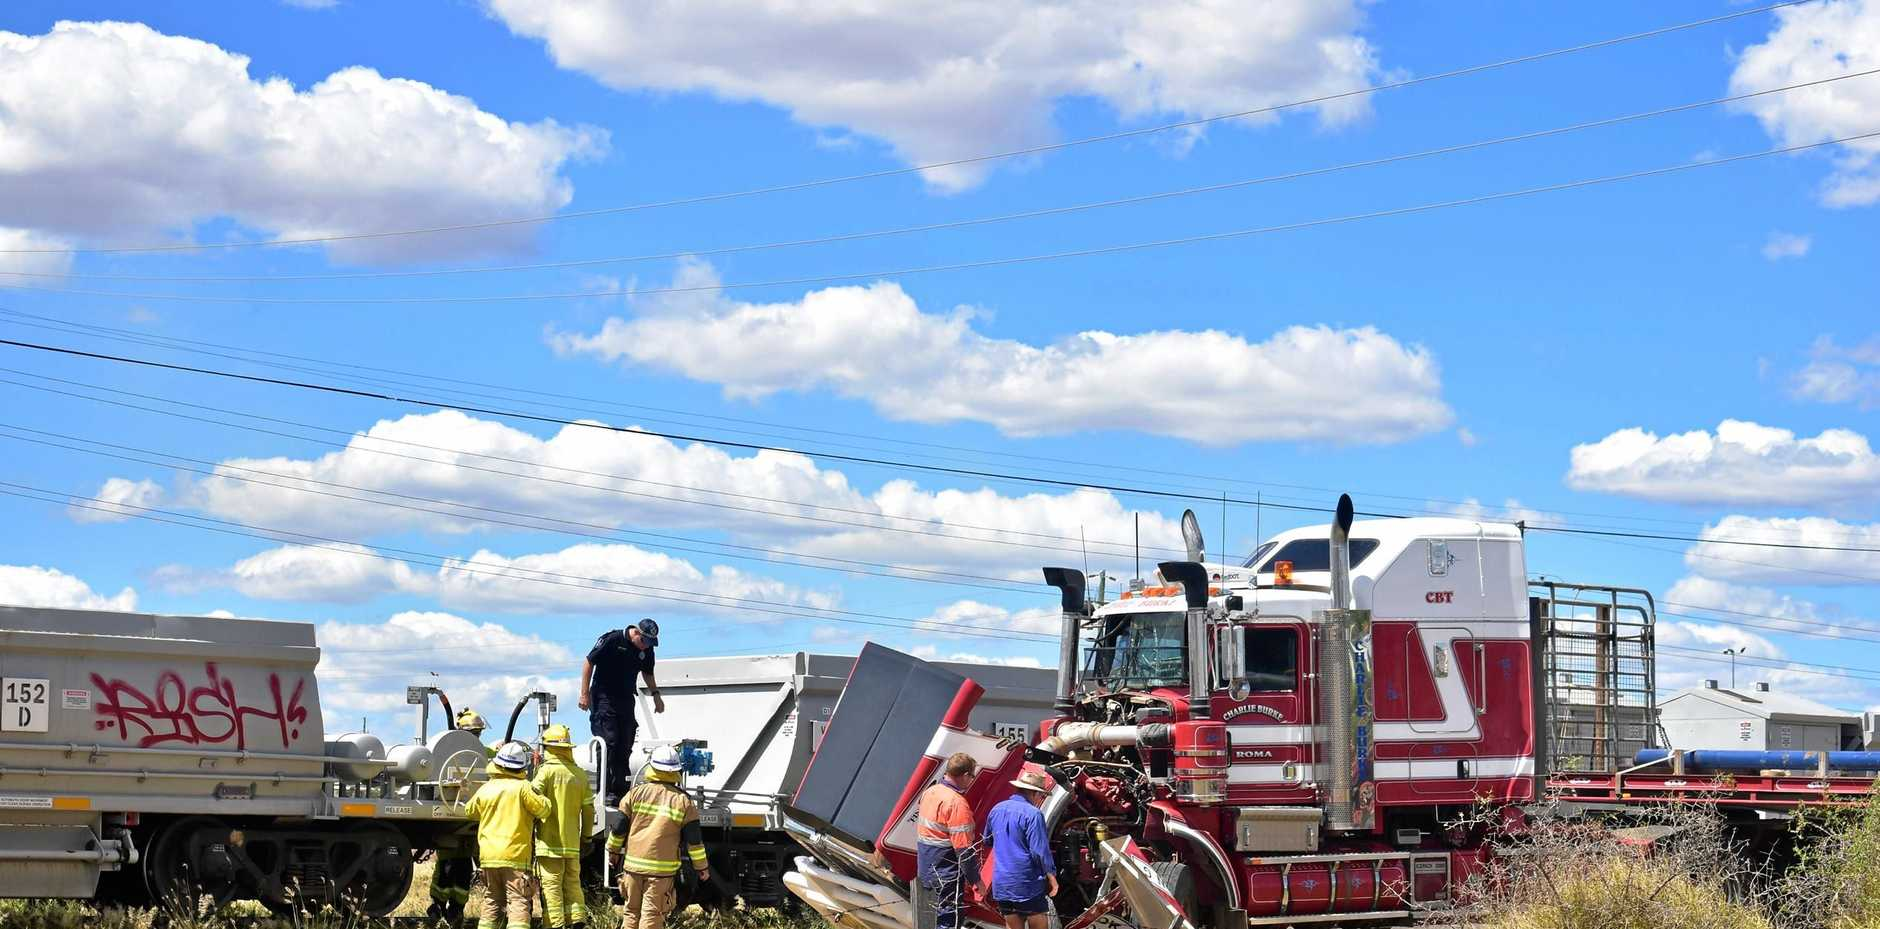 Emergency services were called to a crash between a prime mover and a train on Roma Downs Rd this afternoon.